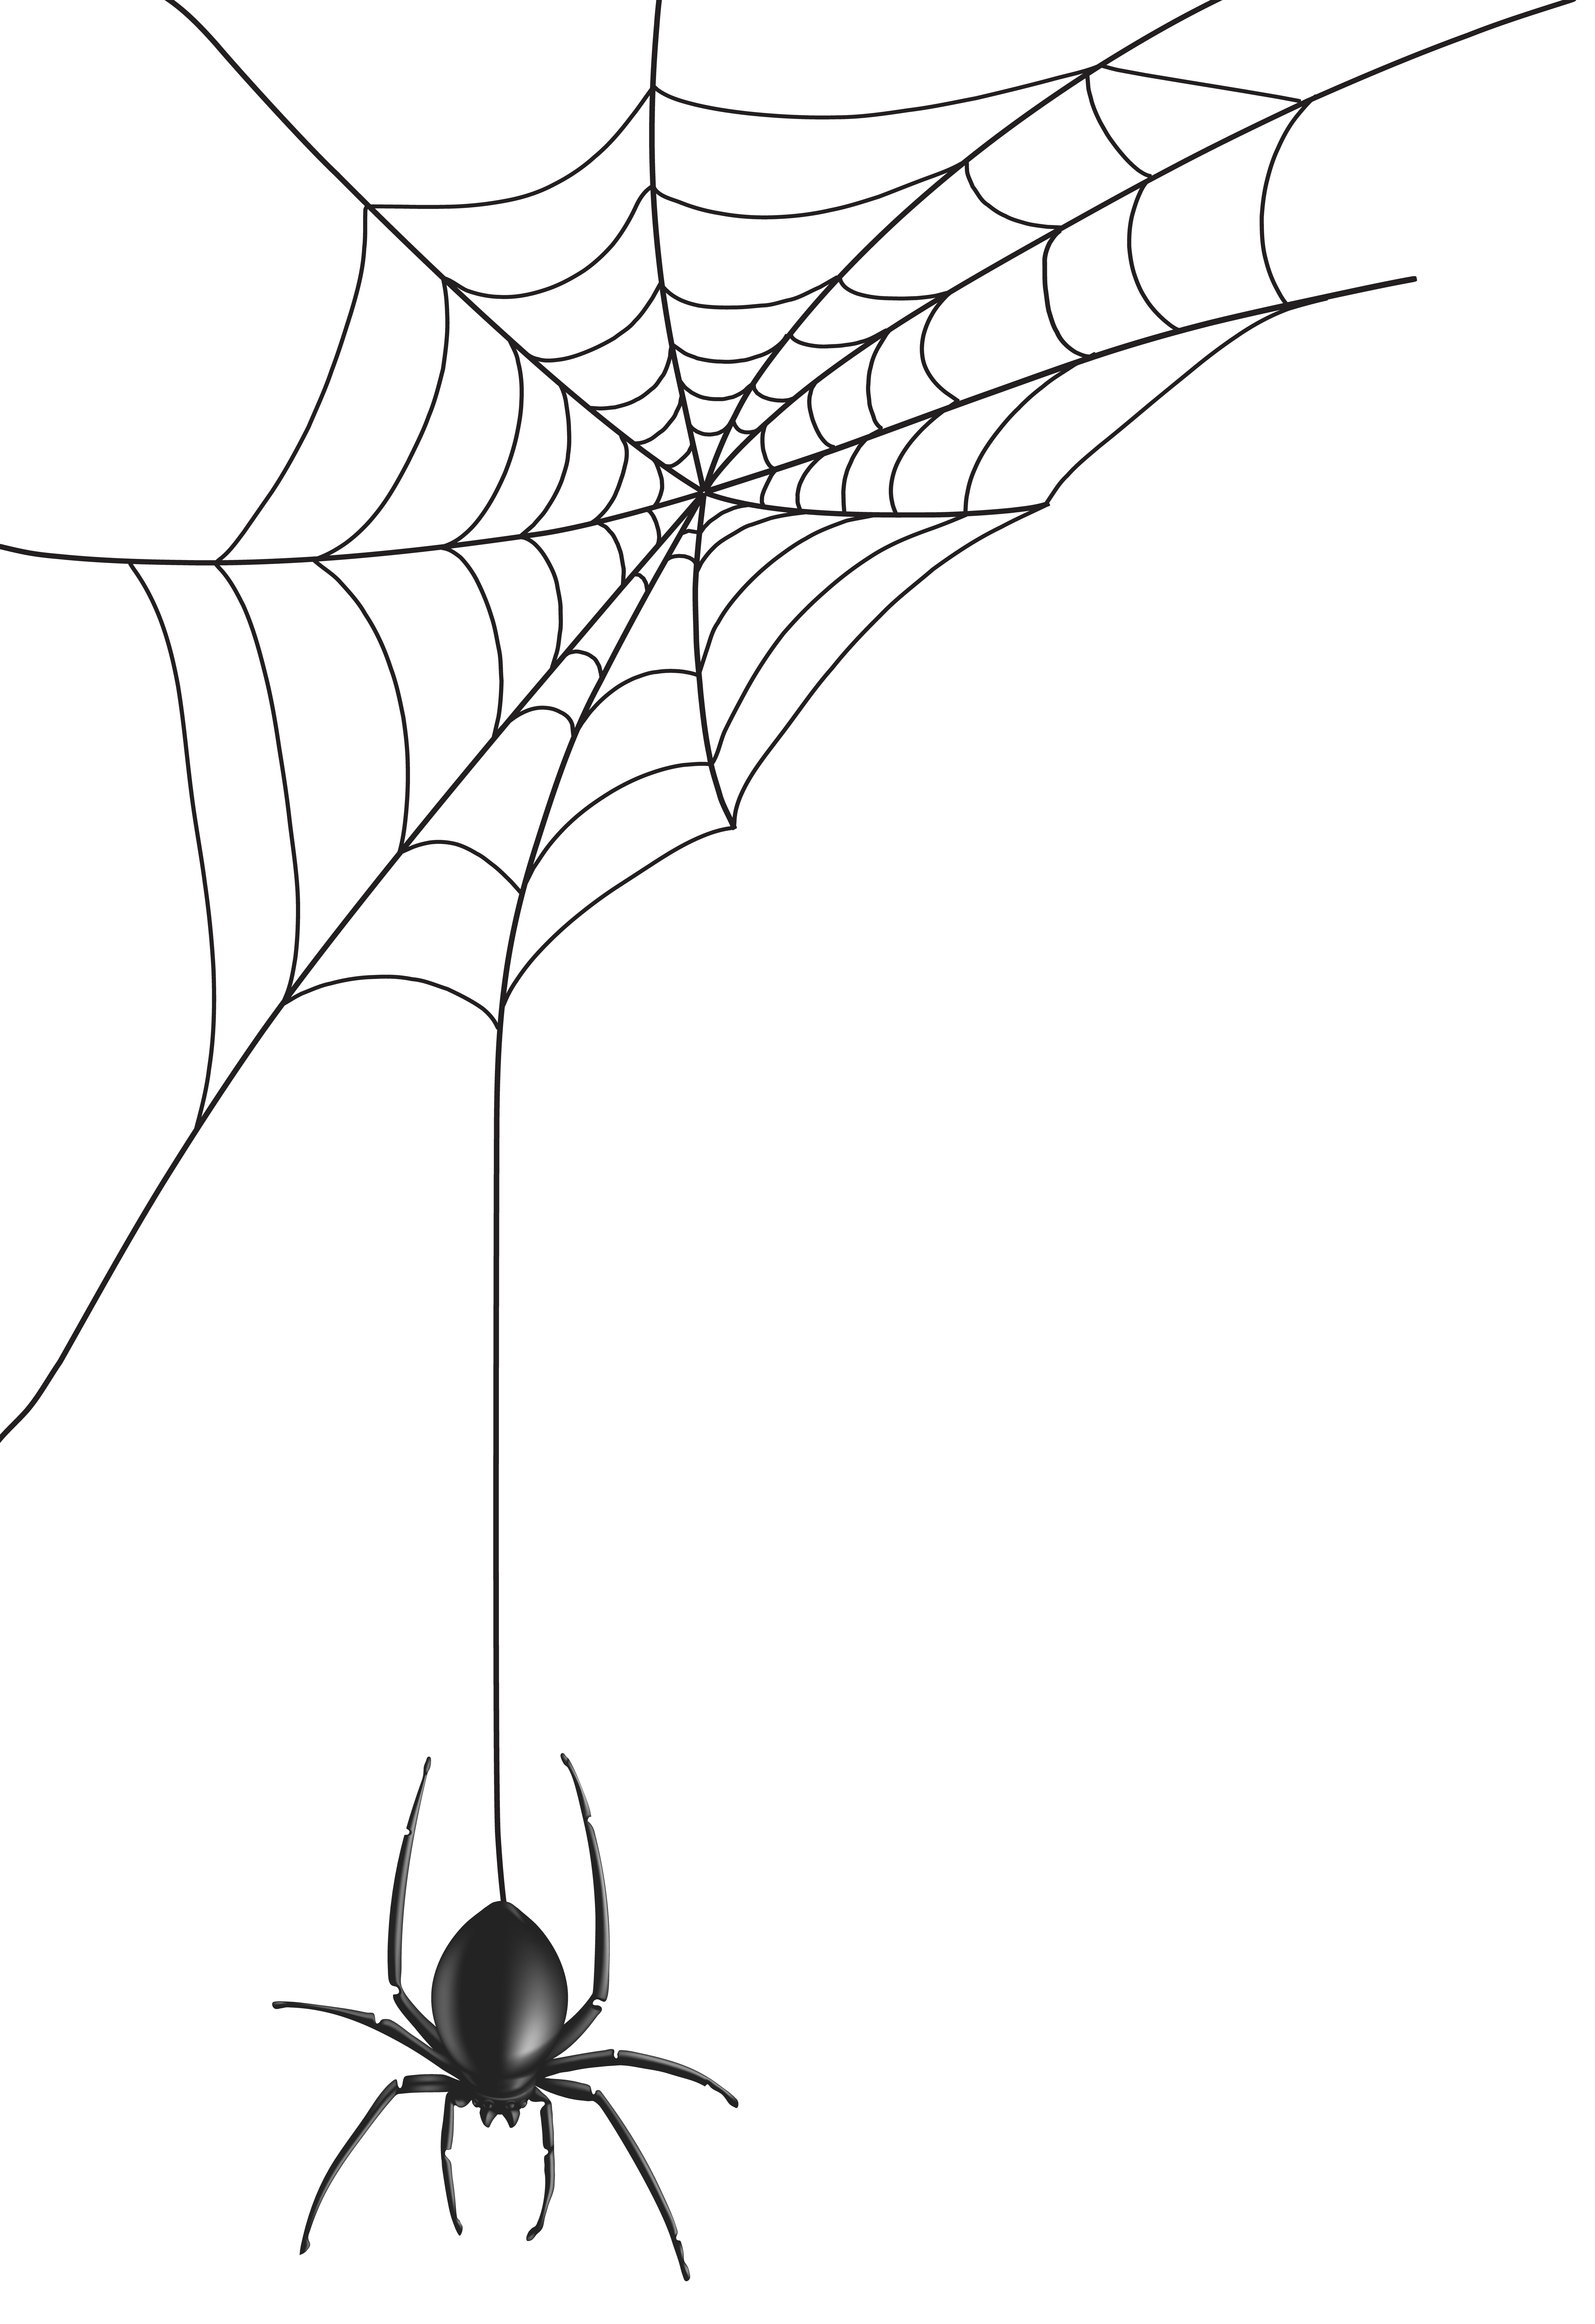 Halloween spiders hanging from web clipart picture library download Spider Web PNG Clip Art Image | Gallery Yopriceville - High-Quality ... picture library download